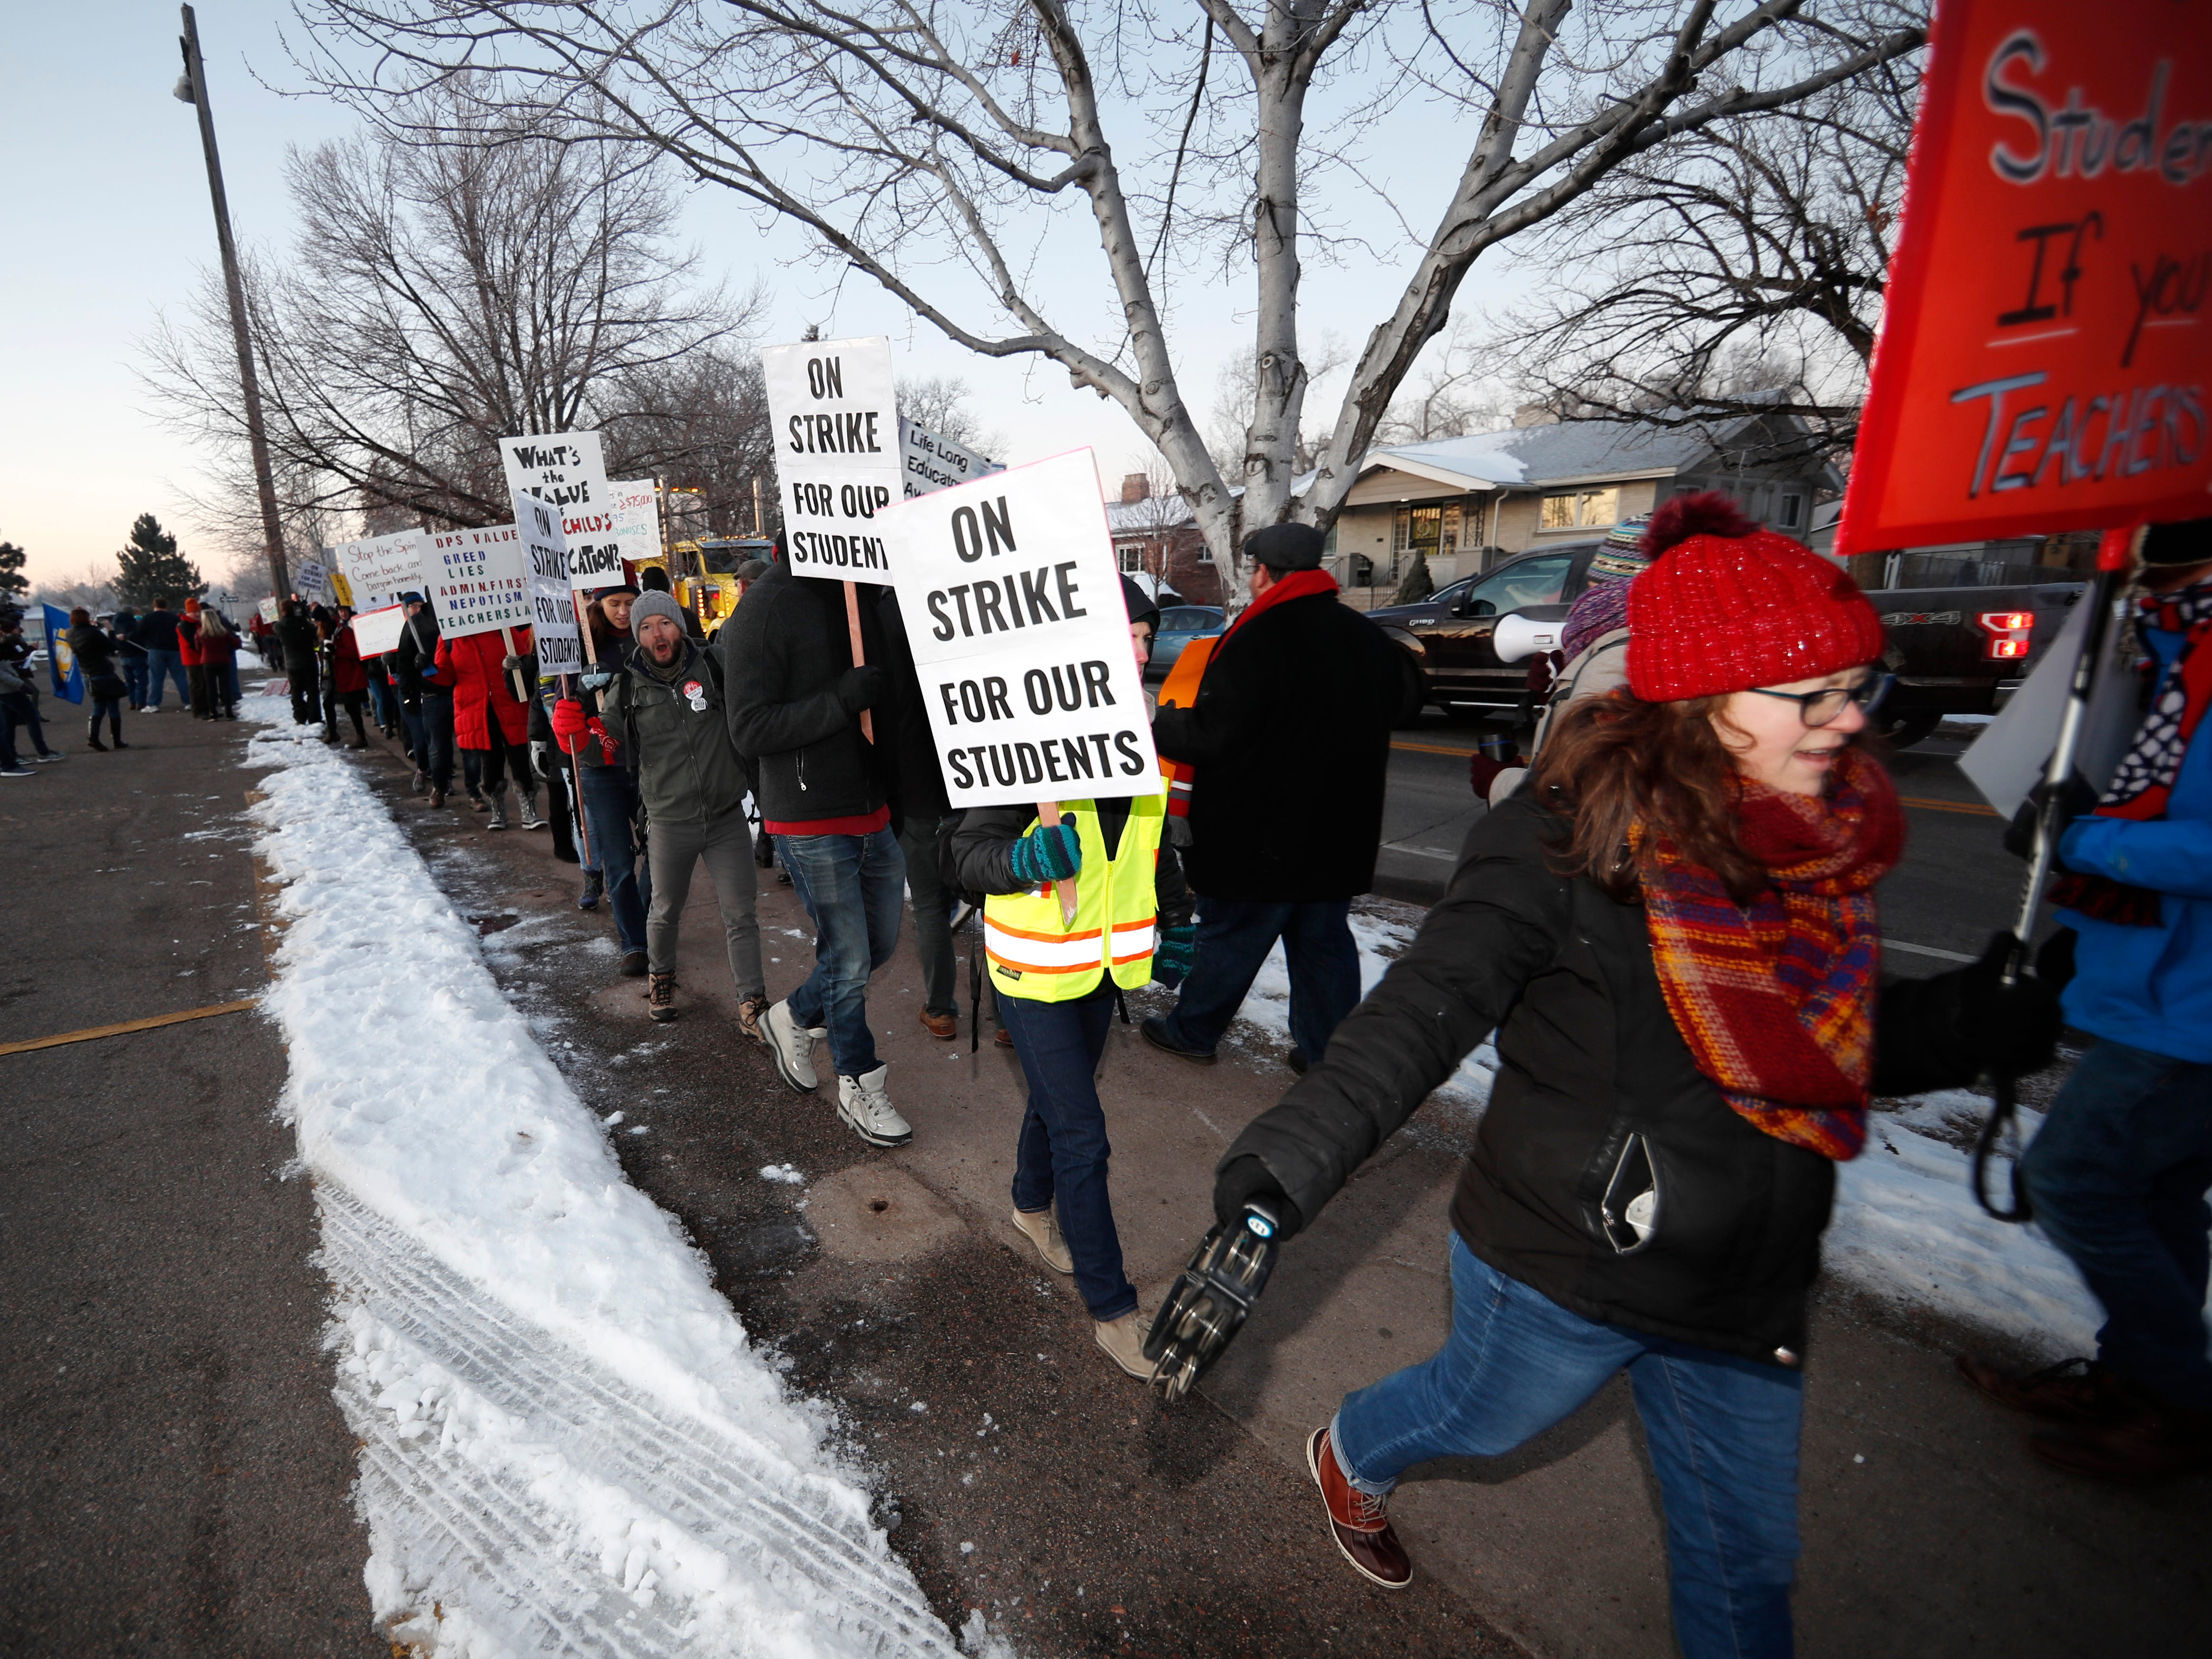 Teachers carry placards as they walk a picket line outside South High School early Monday, Feb. 11, 2019, in Denver. The strike on Monday is the first for teachers in Colorado in 25 years after failed negotiations with the school district over base pay. (AP Photo/David Zalubowski) ORG XMIT: CODZ110